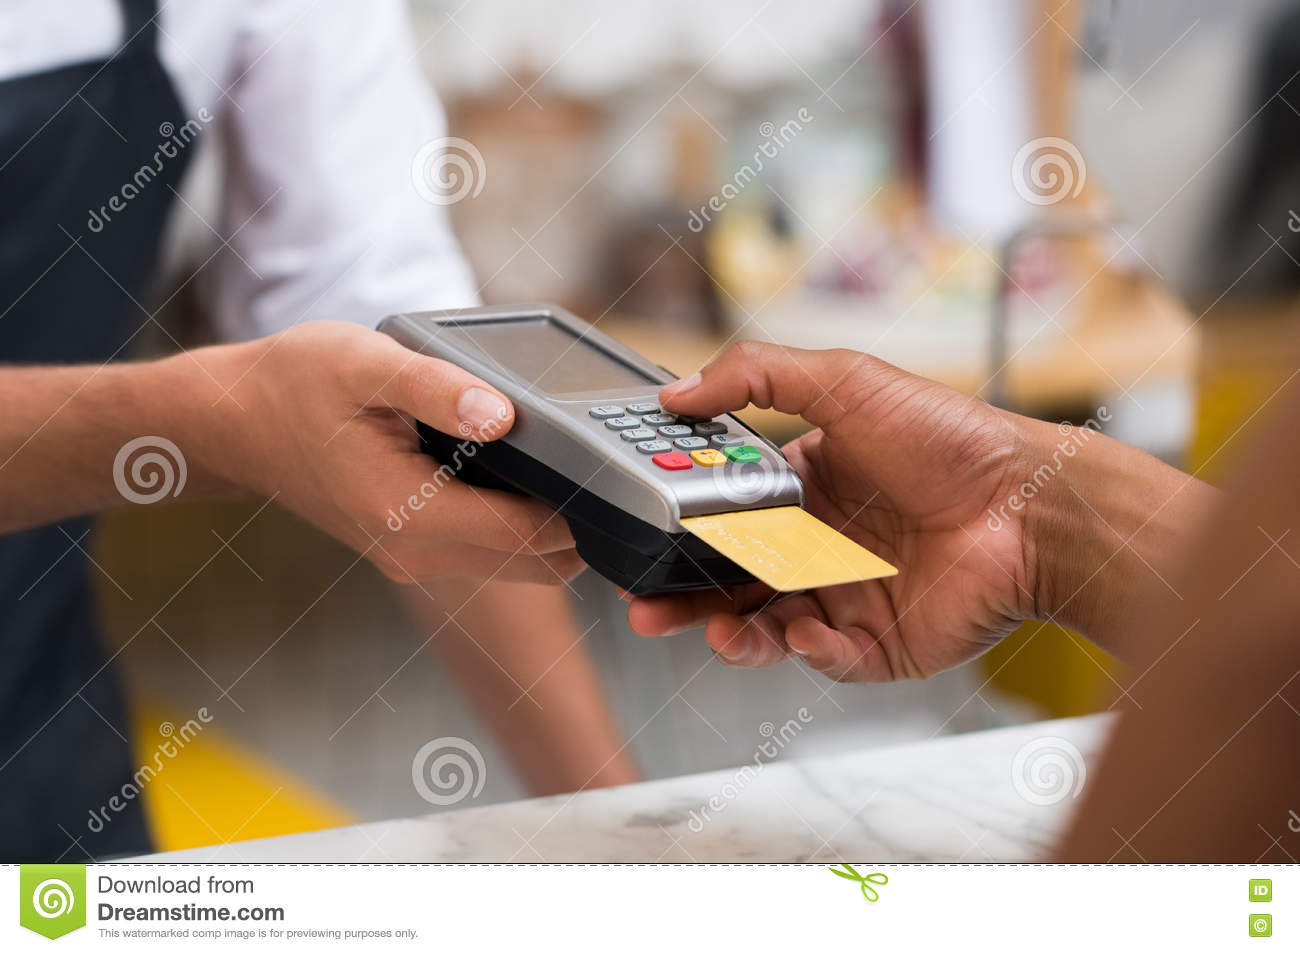 Paying by credit card reader stock photo image of business download paying by credit card reader stock photo image of business cashier 73916668 colourmoves